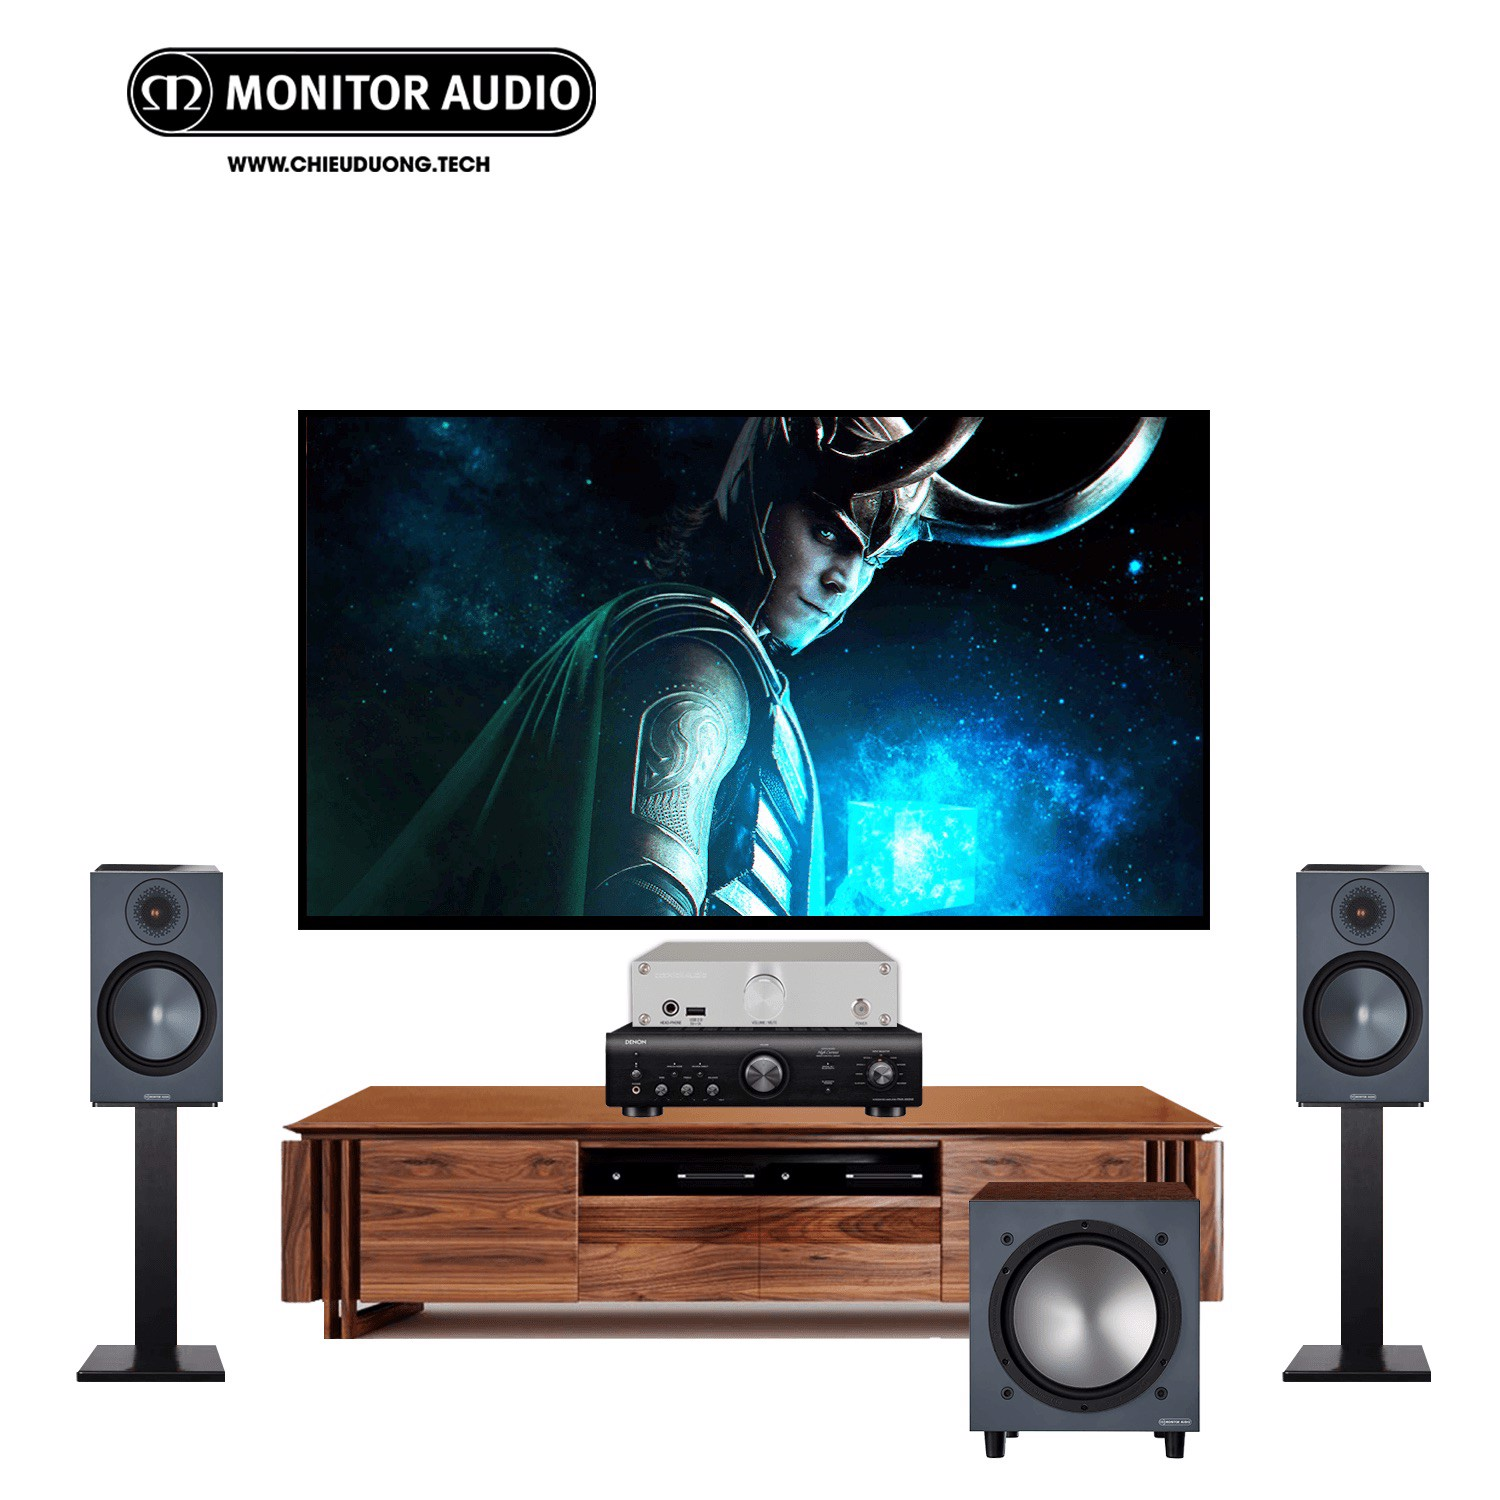 Dàn âm thanh : Cocktail Audio N15D Silver, Ampli Denon PMA-600NE, Loa bookshelf Monitor Audio Bronze 100 và Loa Subwoofer Monitor Audio Bronze W10